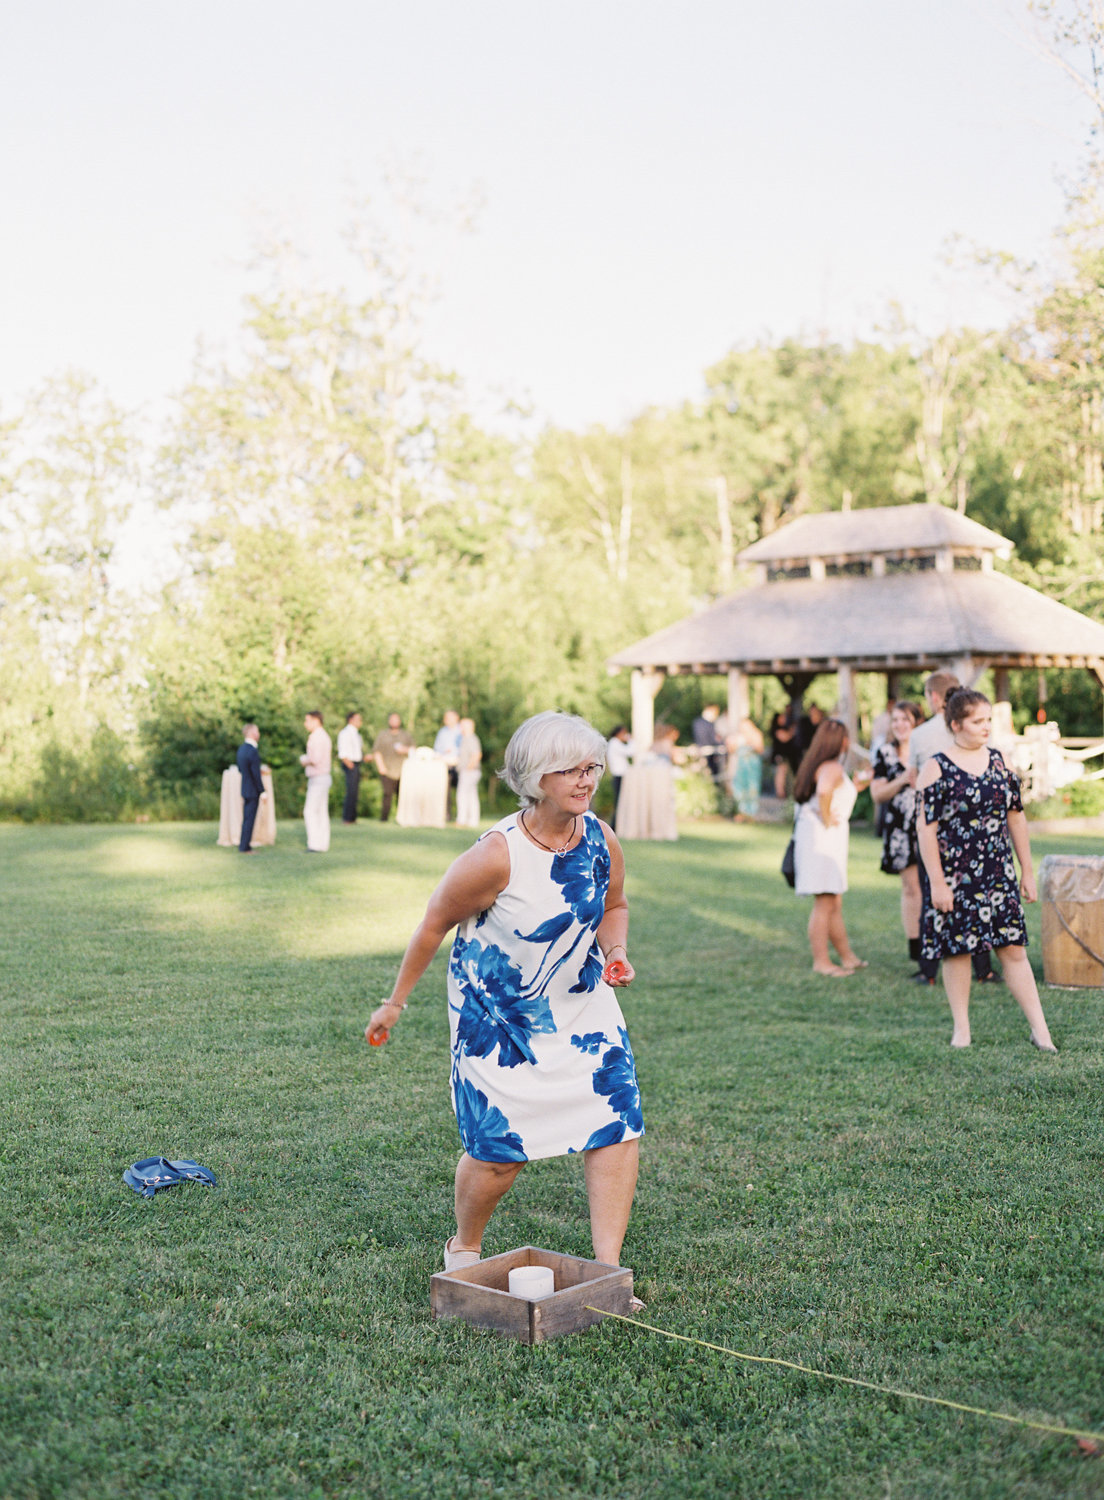 Jacqueline Anne Photography - Nova Scotia Backyard Wedding-62